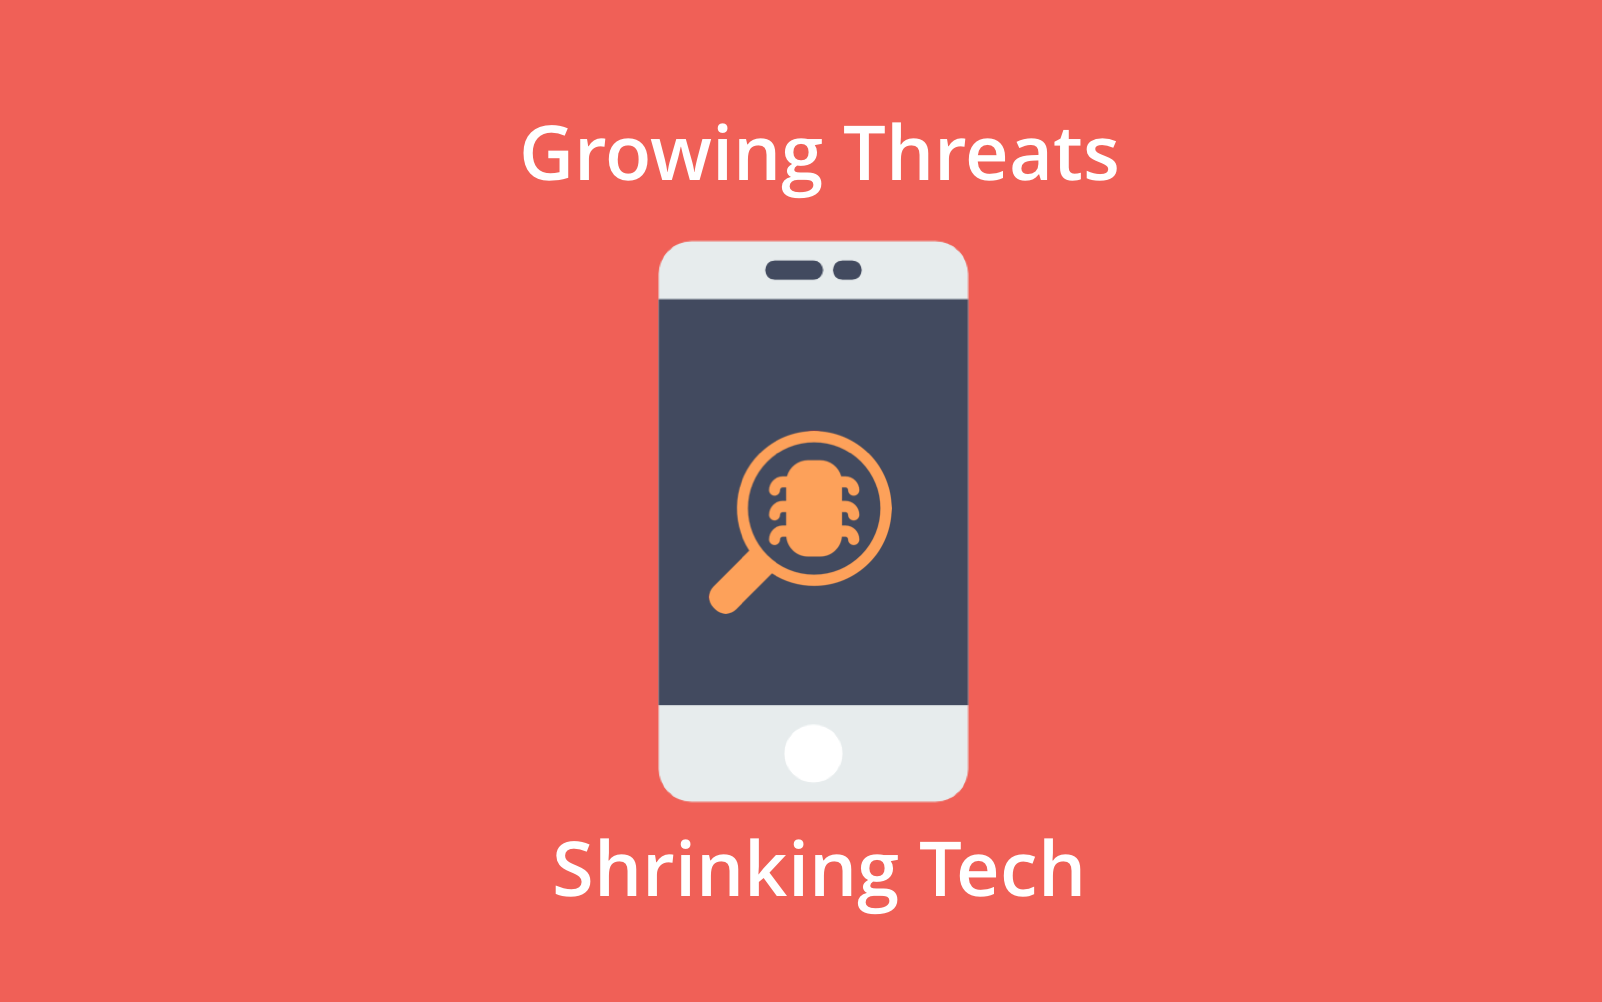 Growing threats from shrinking tech